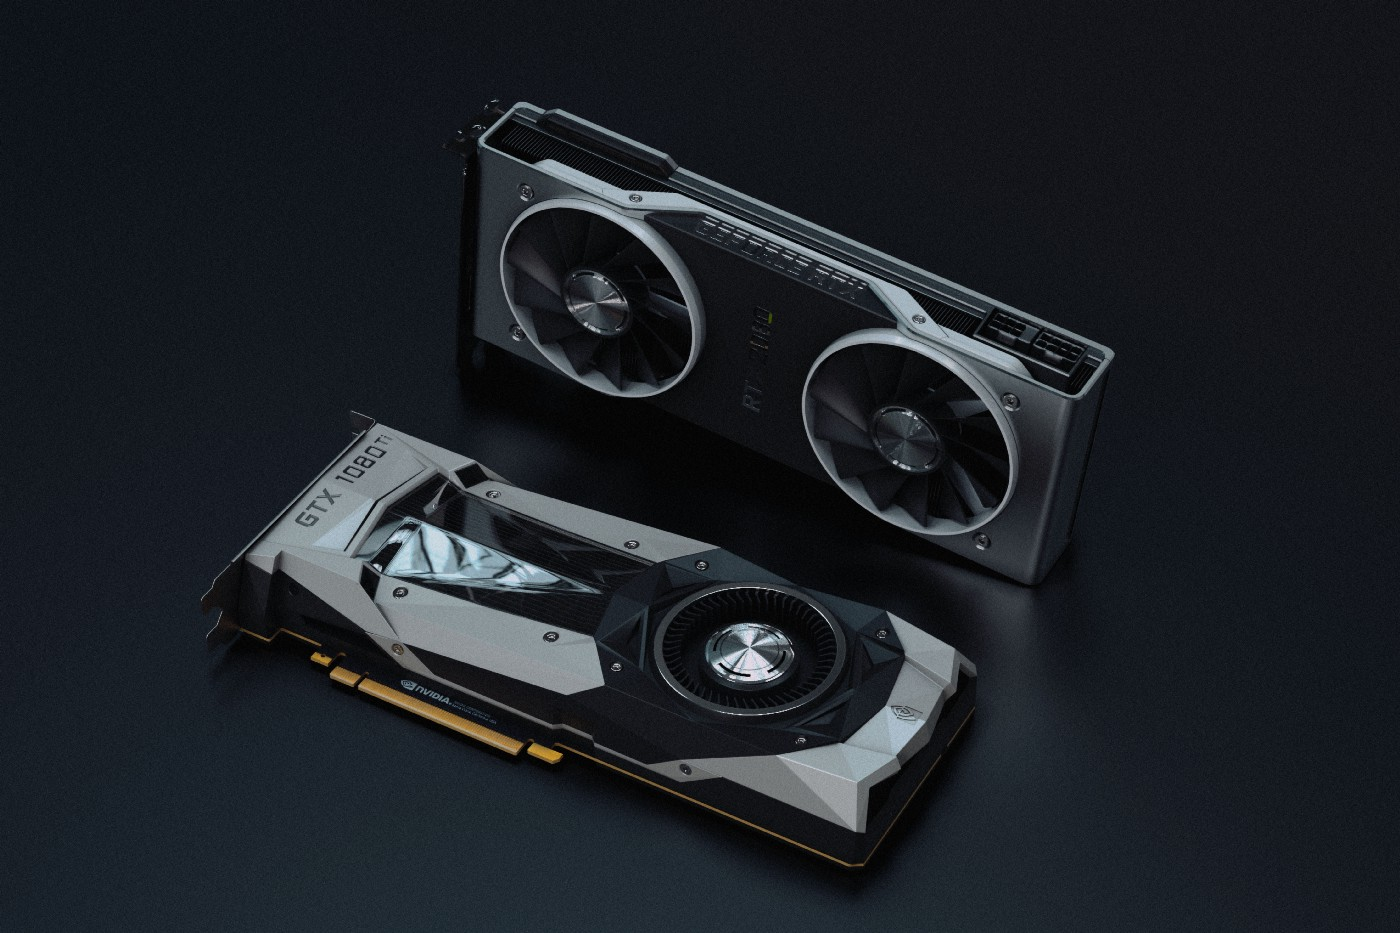 A title image with two graphic cards in front of a dark background.